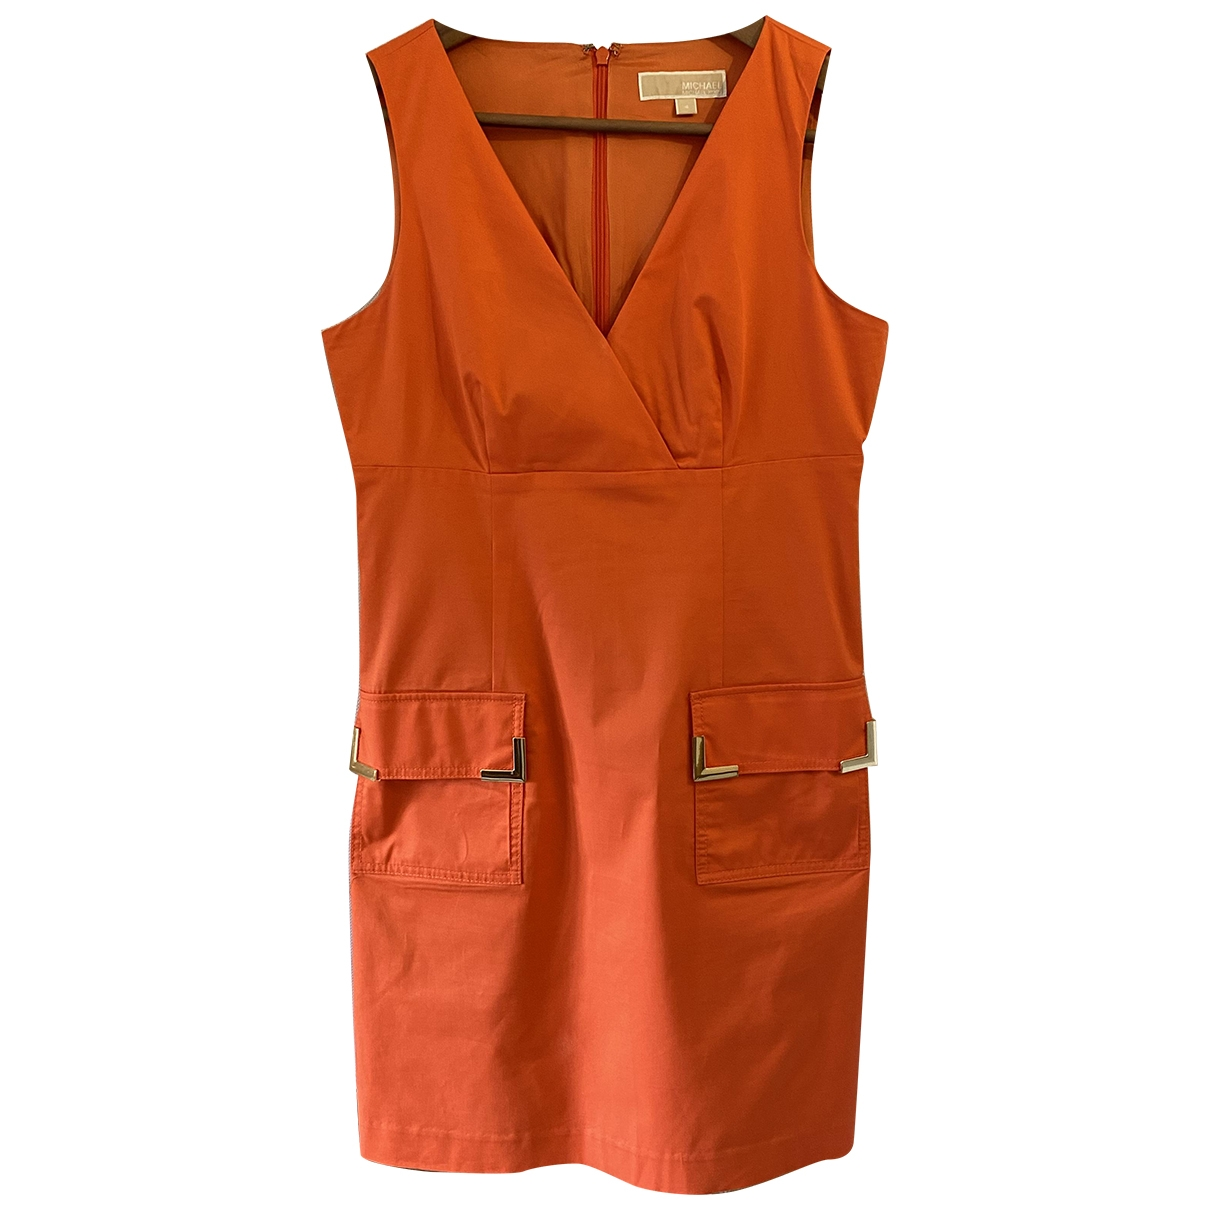 Michael Kors \N Kleid in  Orange Baumwolle